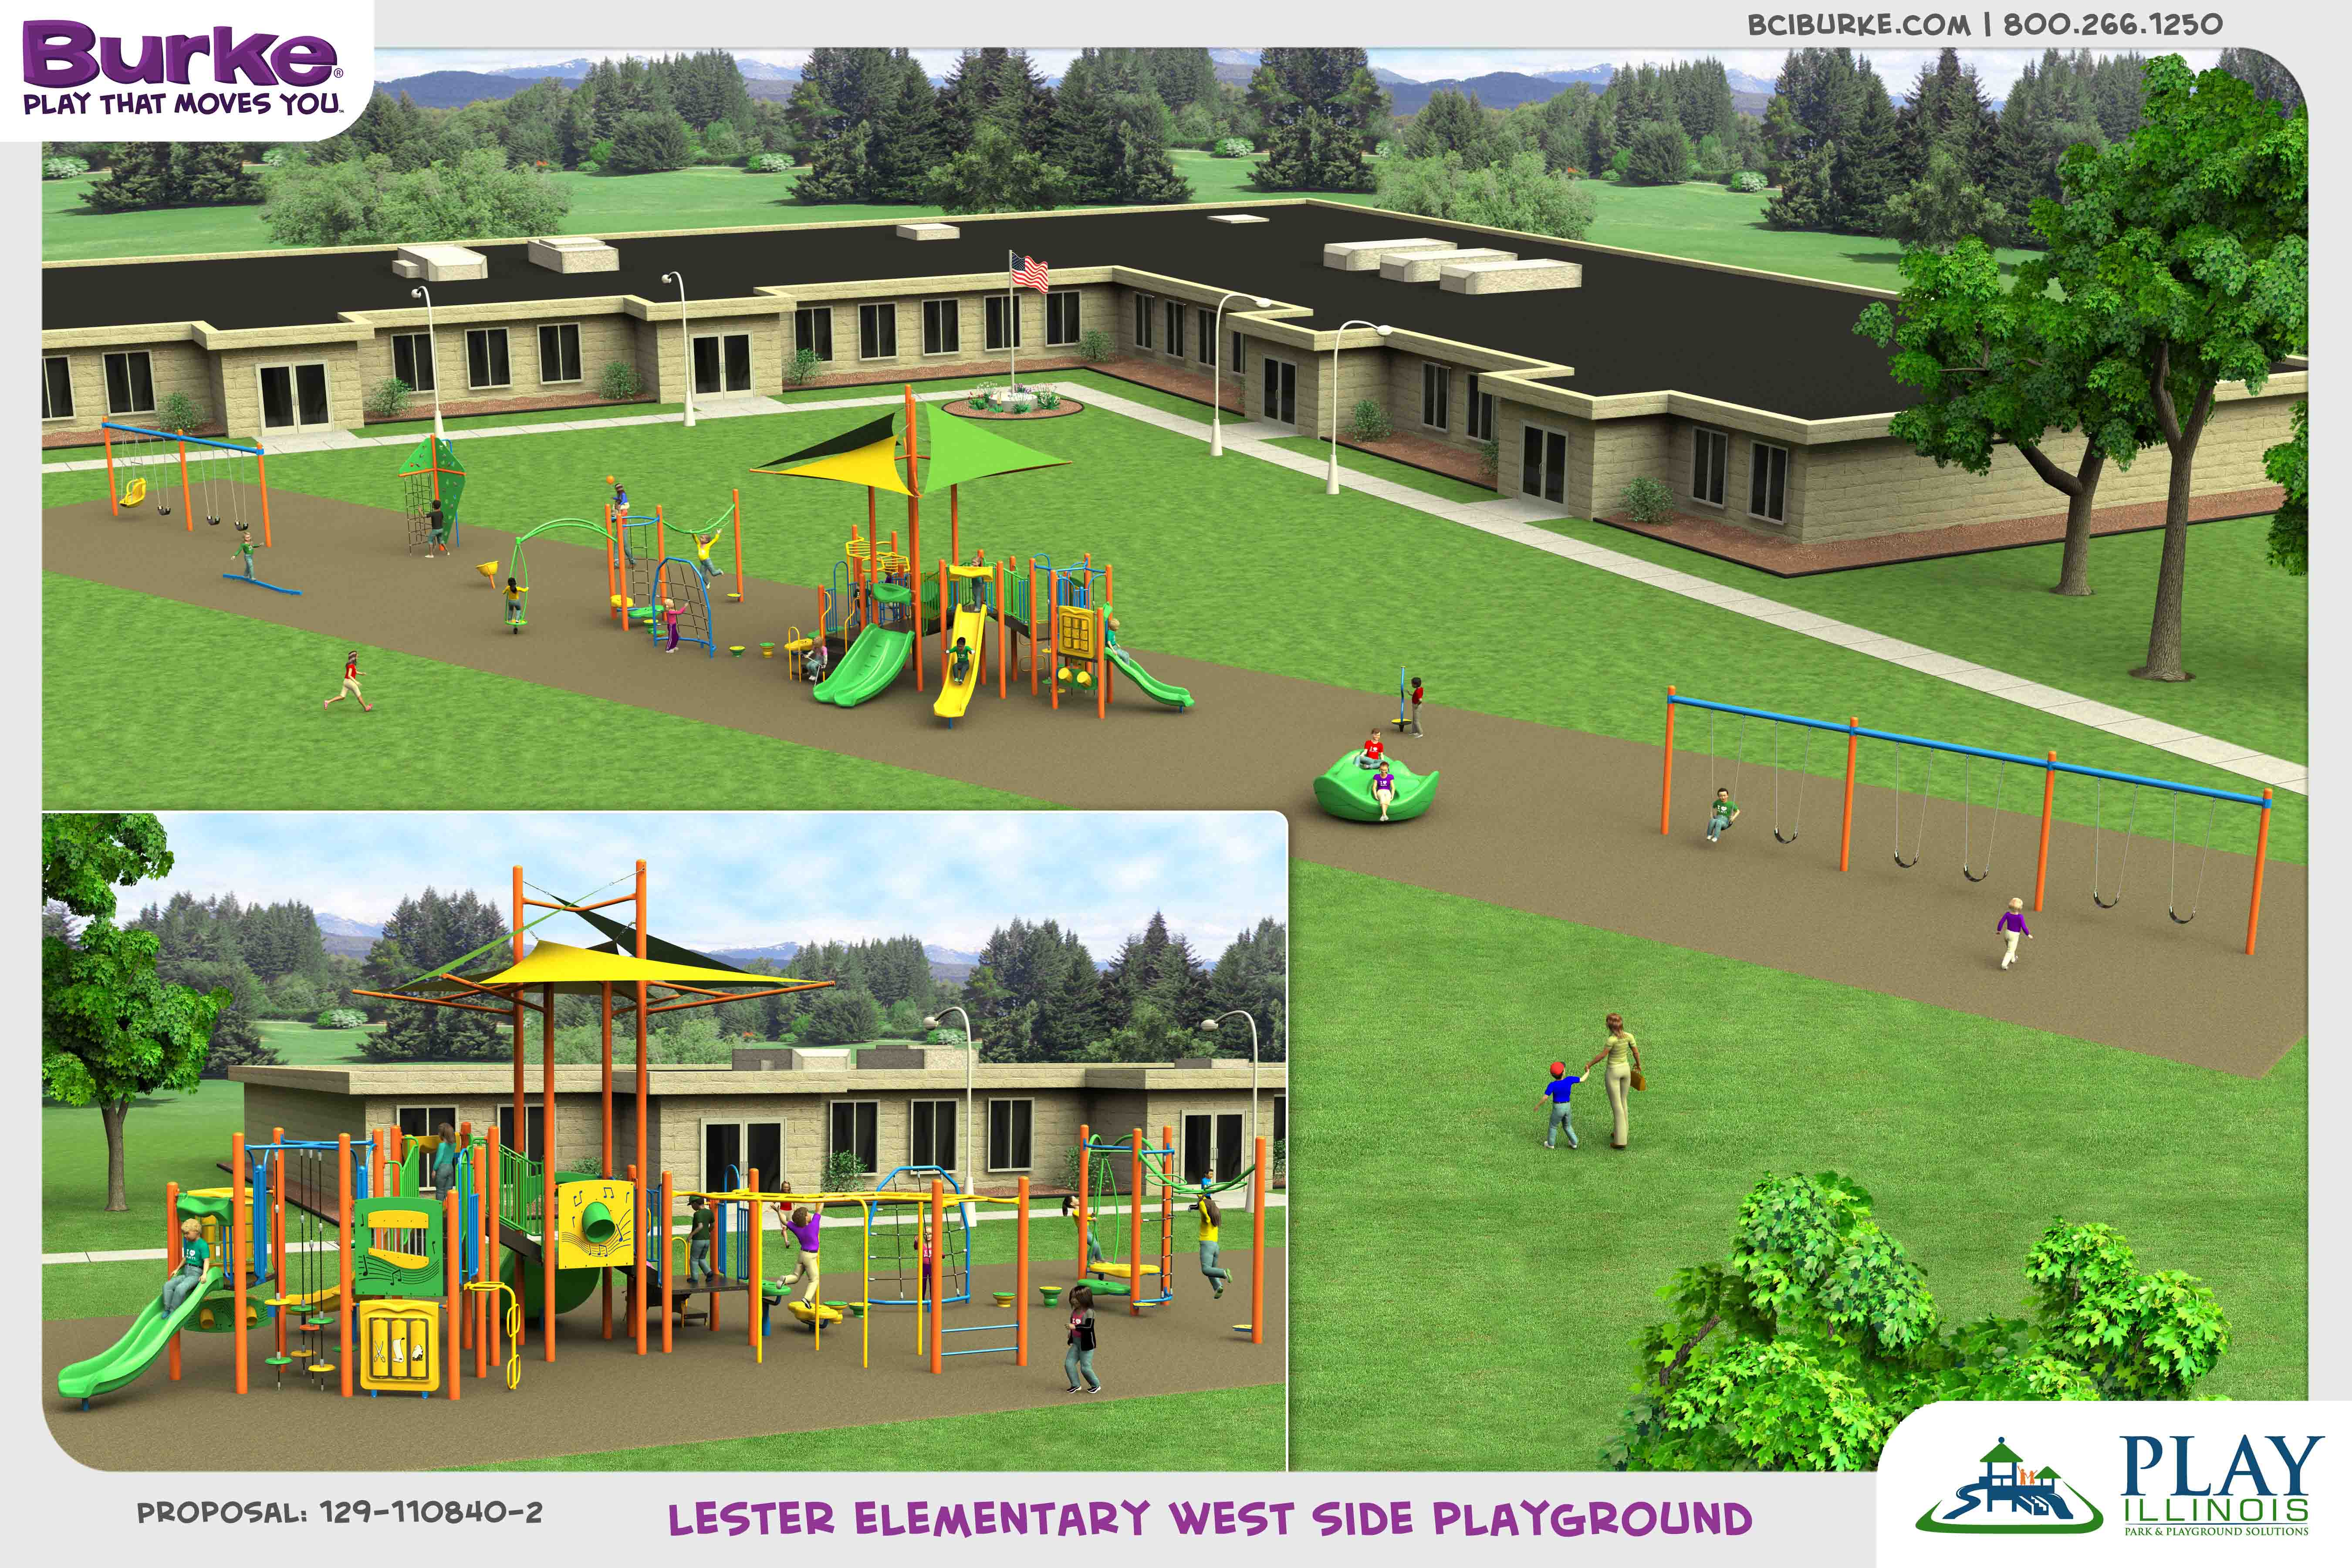 129-110840-2A-copy_MC_LesterElementar dream build play experience accessible playgrounds